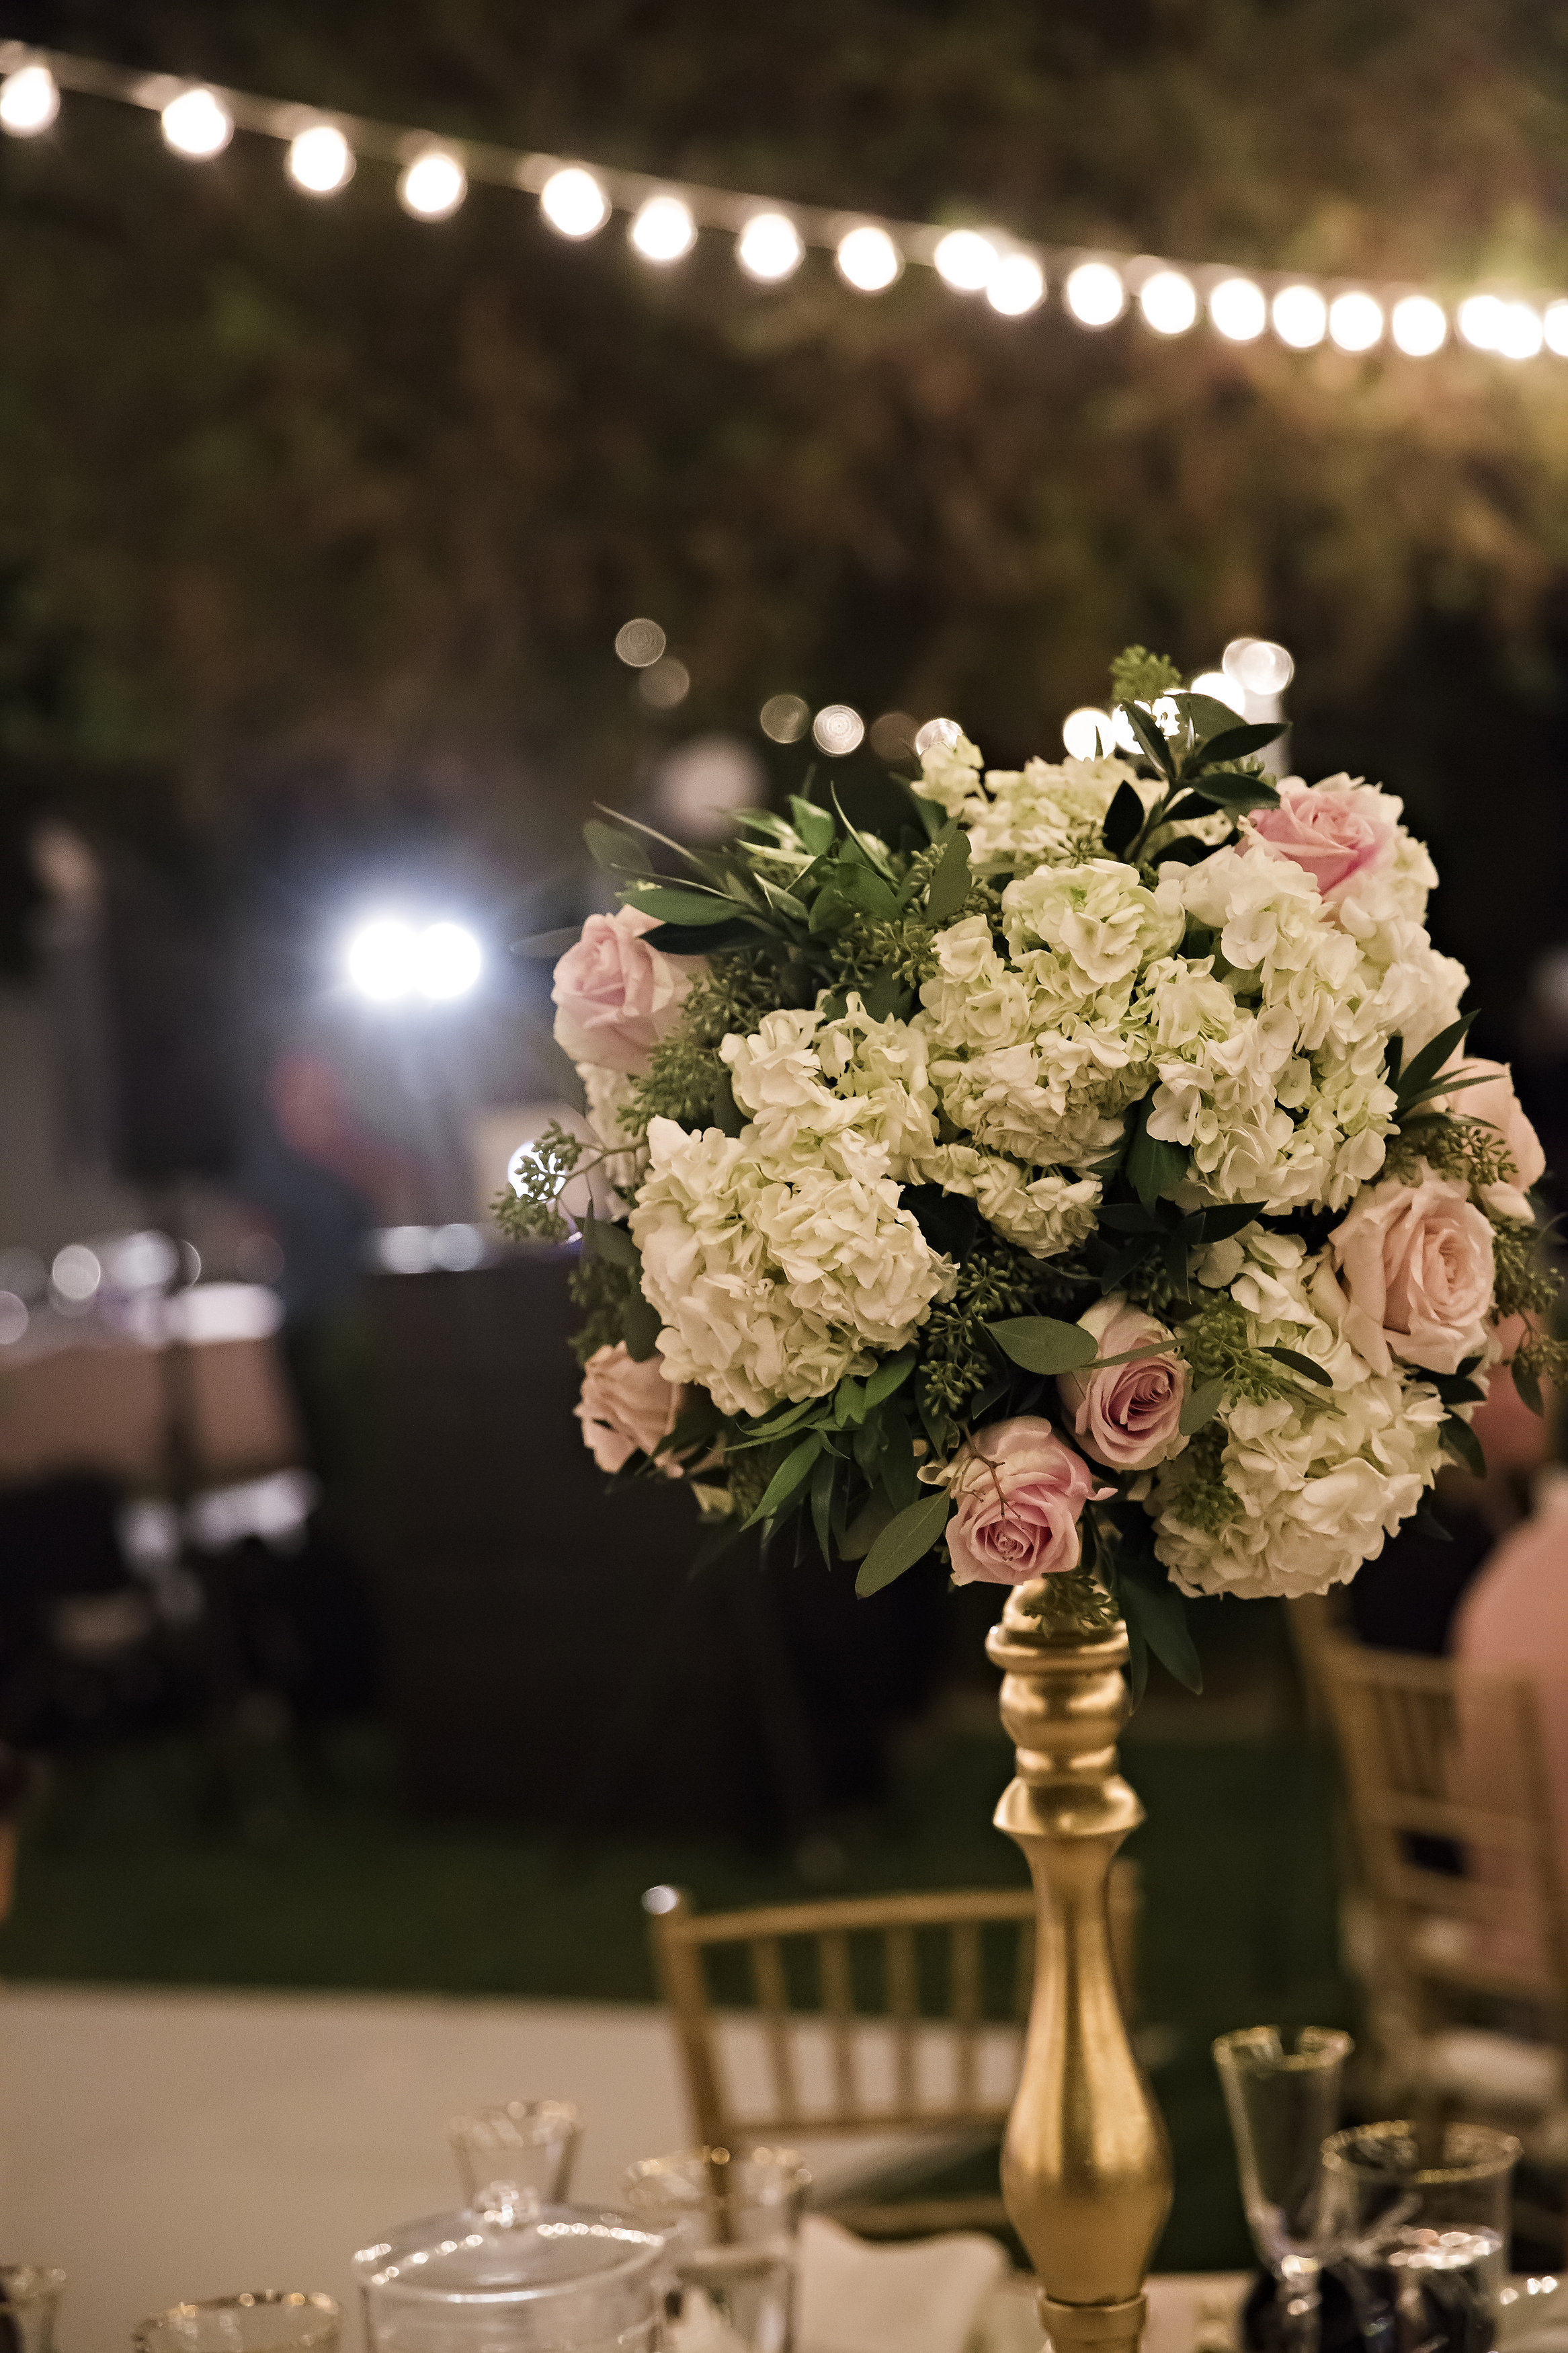 Tall White, Blush and Gold Centerpiece | Temecula Private Estate Wedding | Michelle Garibay Events